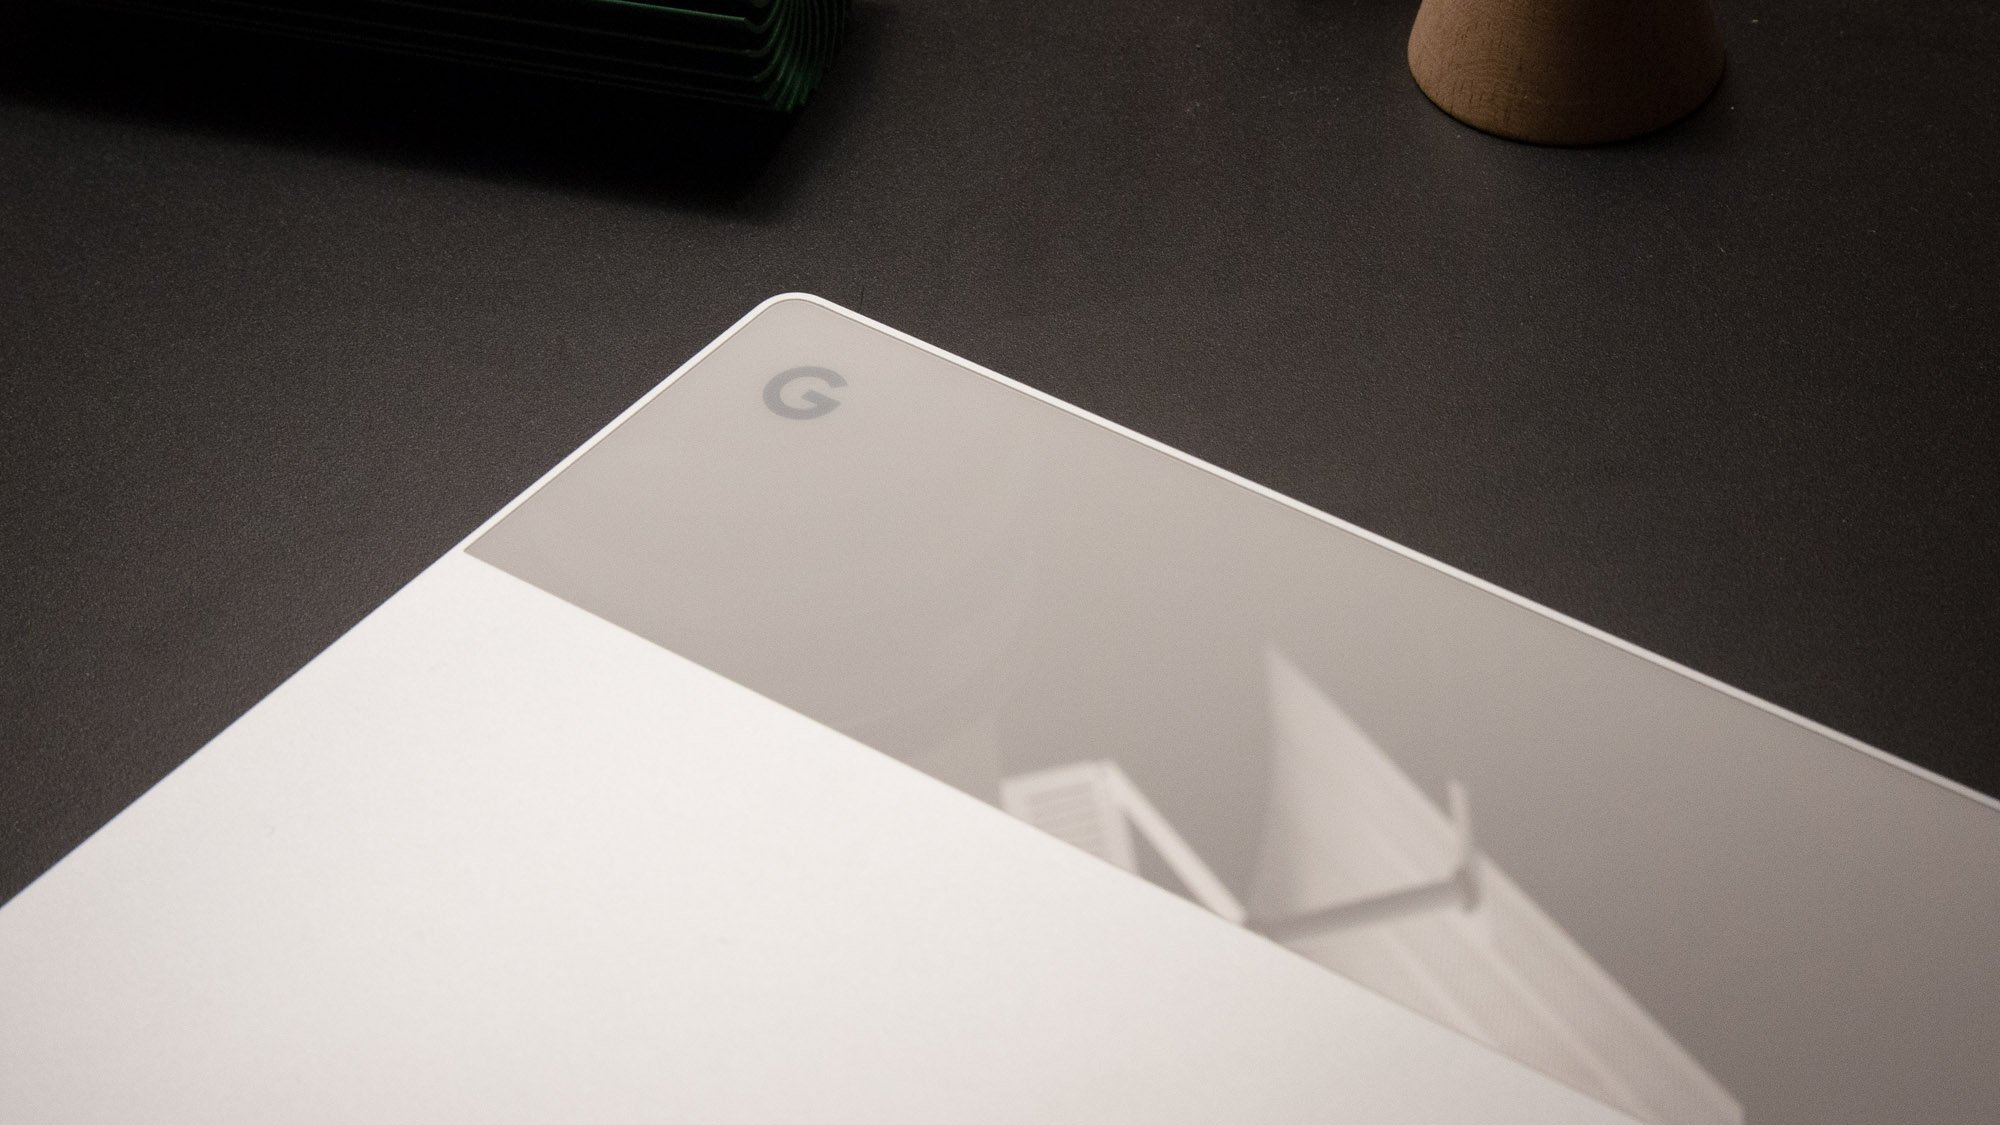 Google Pixelbook 2 release date and specs: Everything you